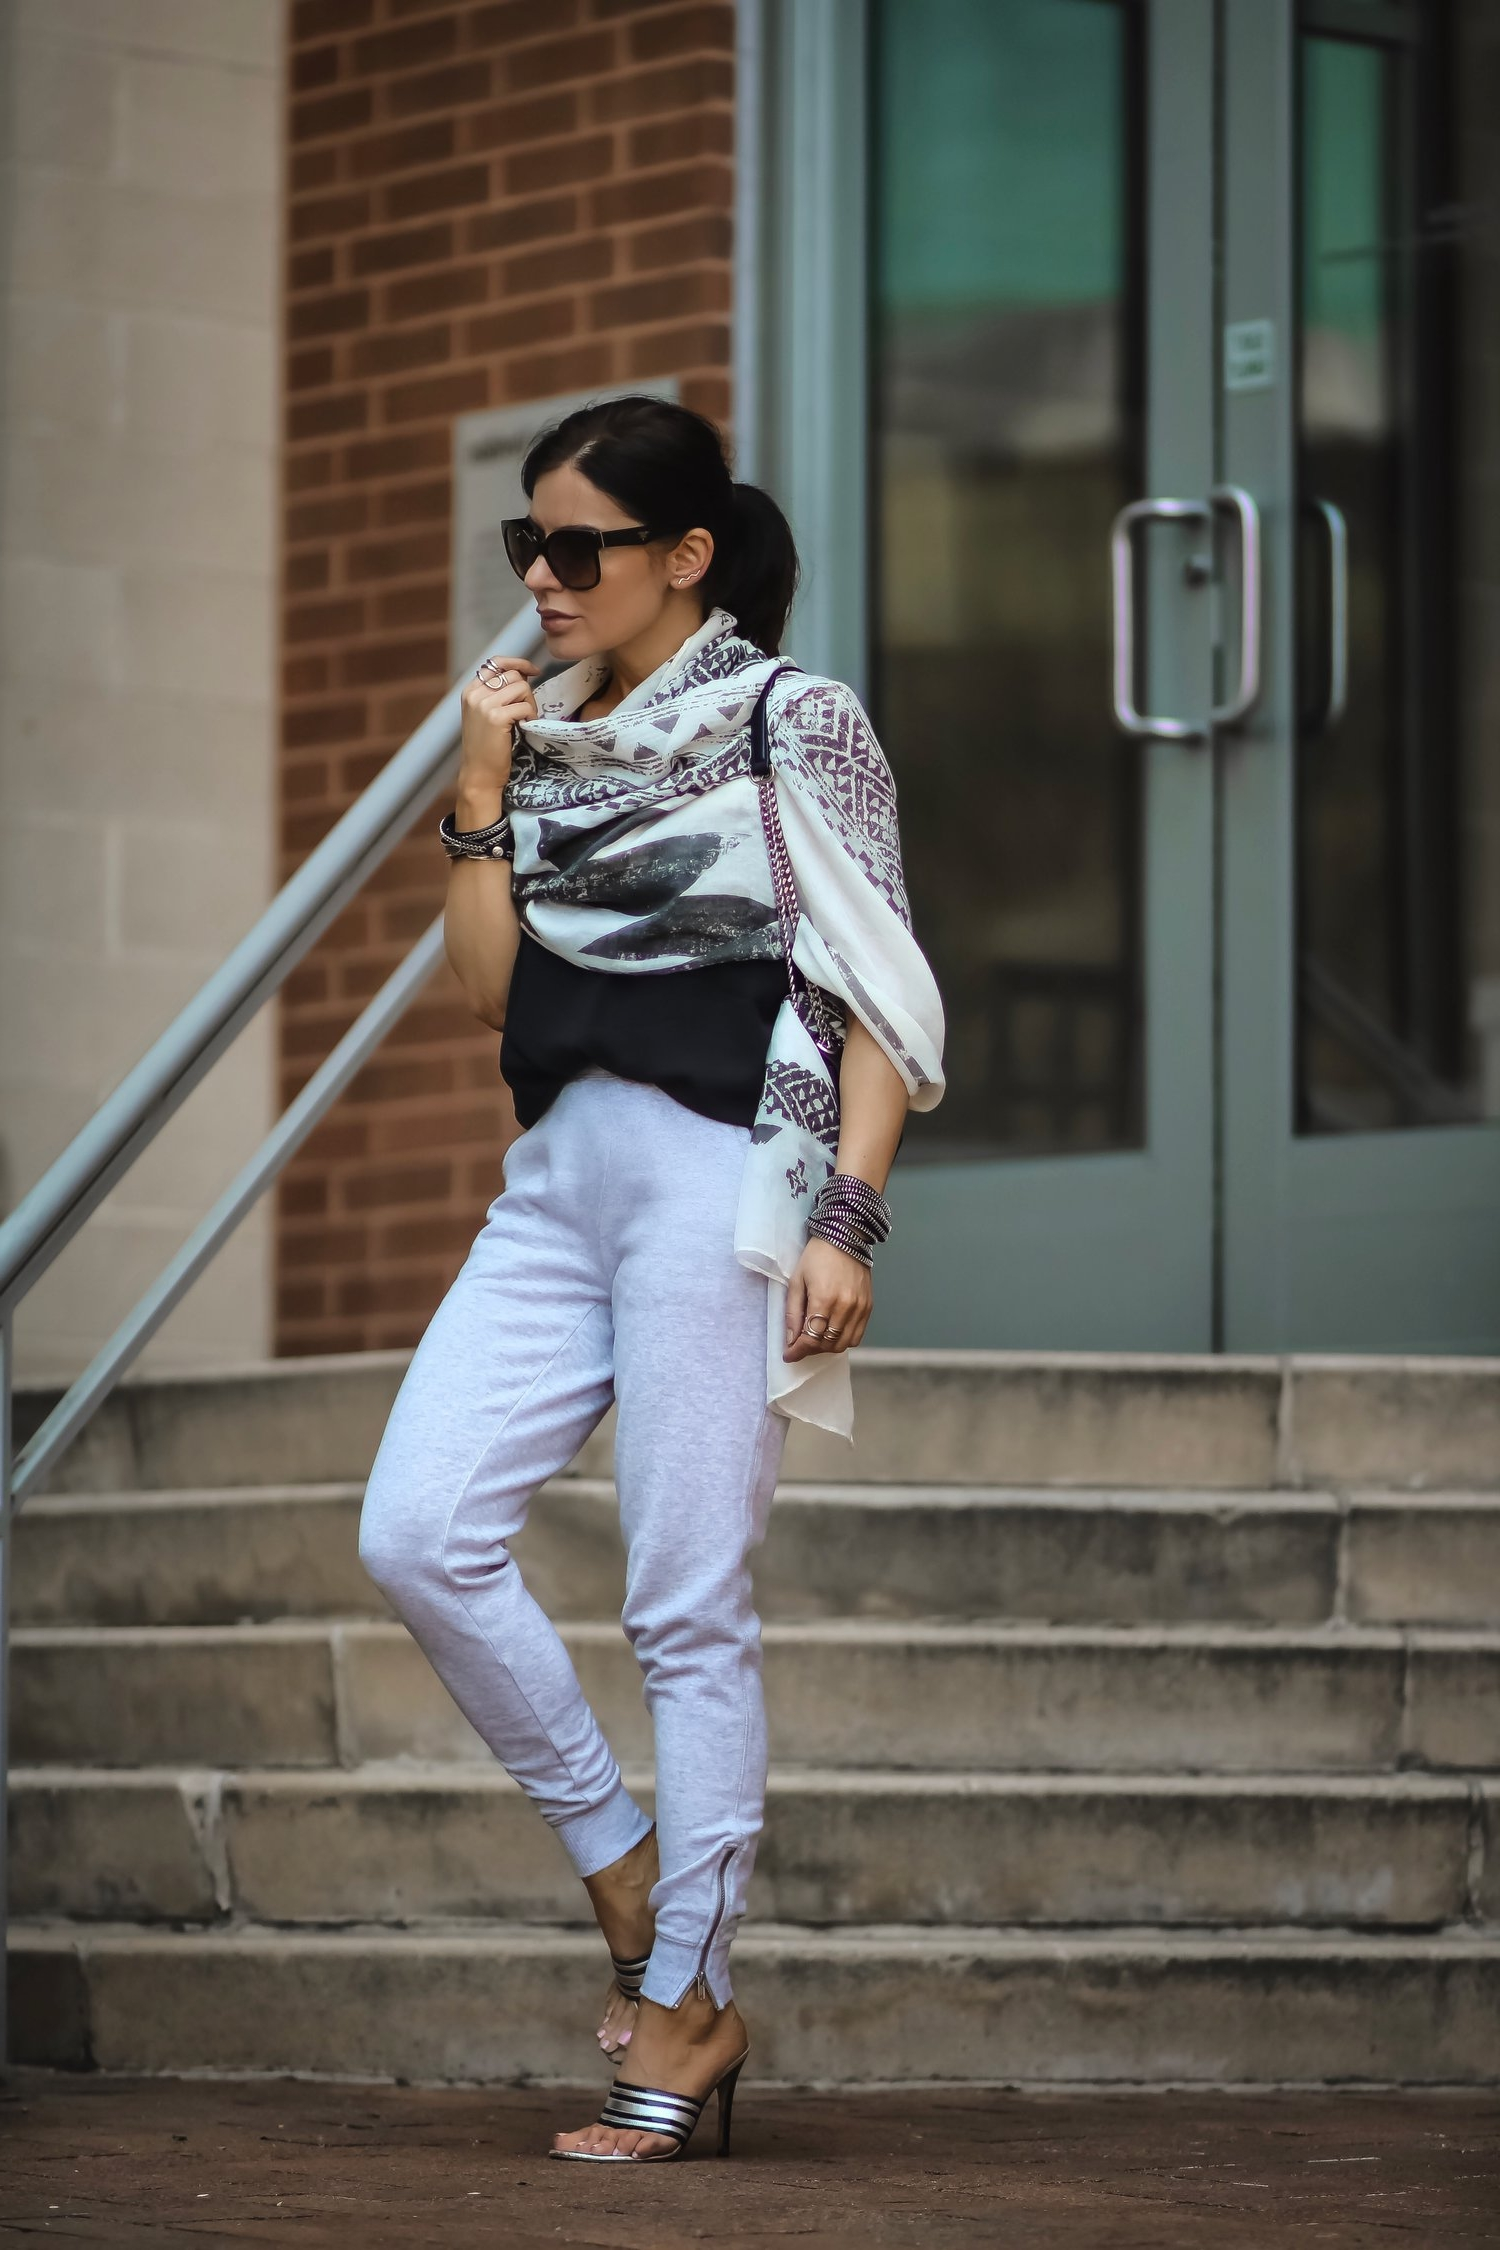 Isabel-Alexander-Aerie-grey-joggers-white-scarf-steps